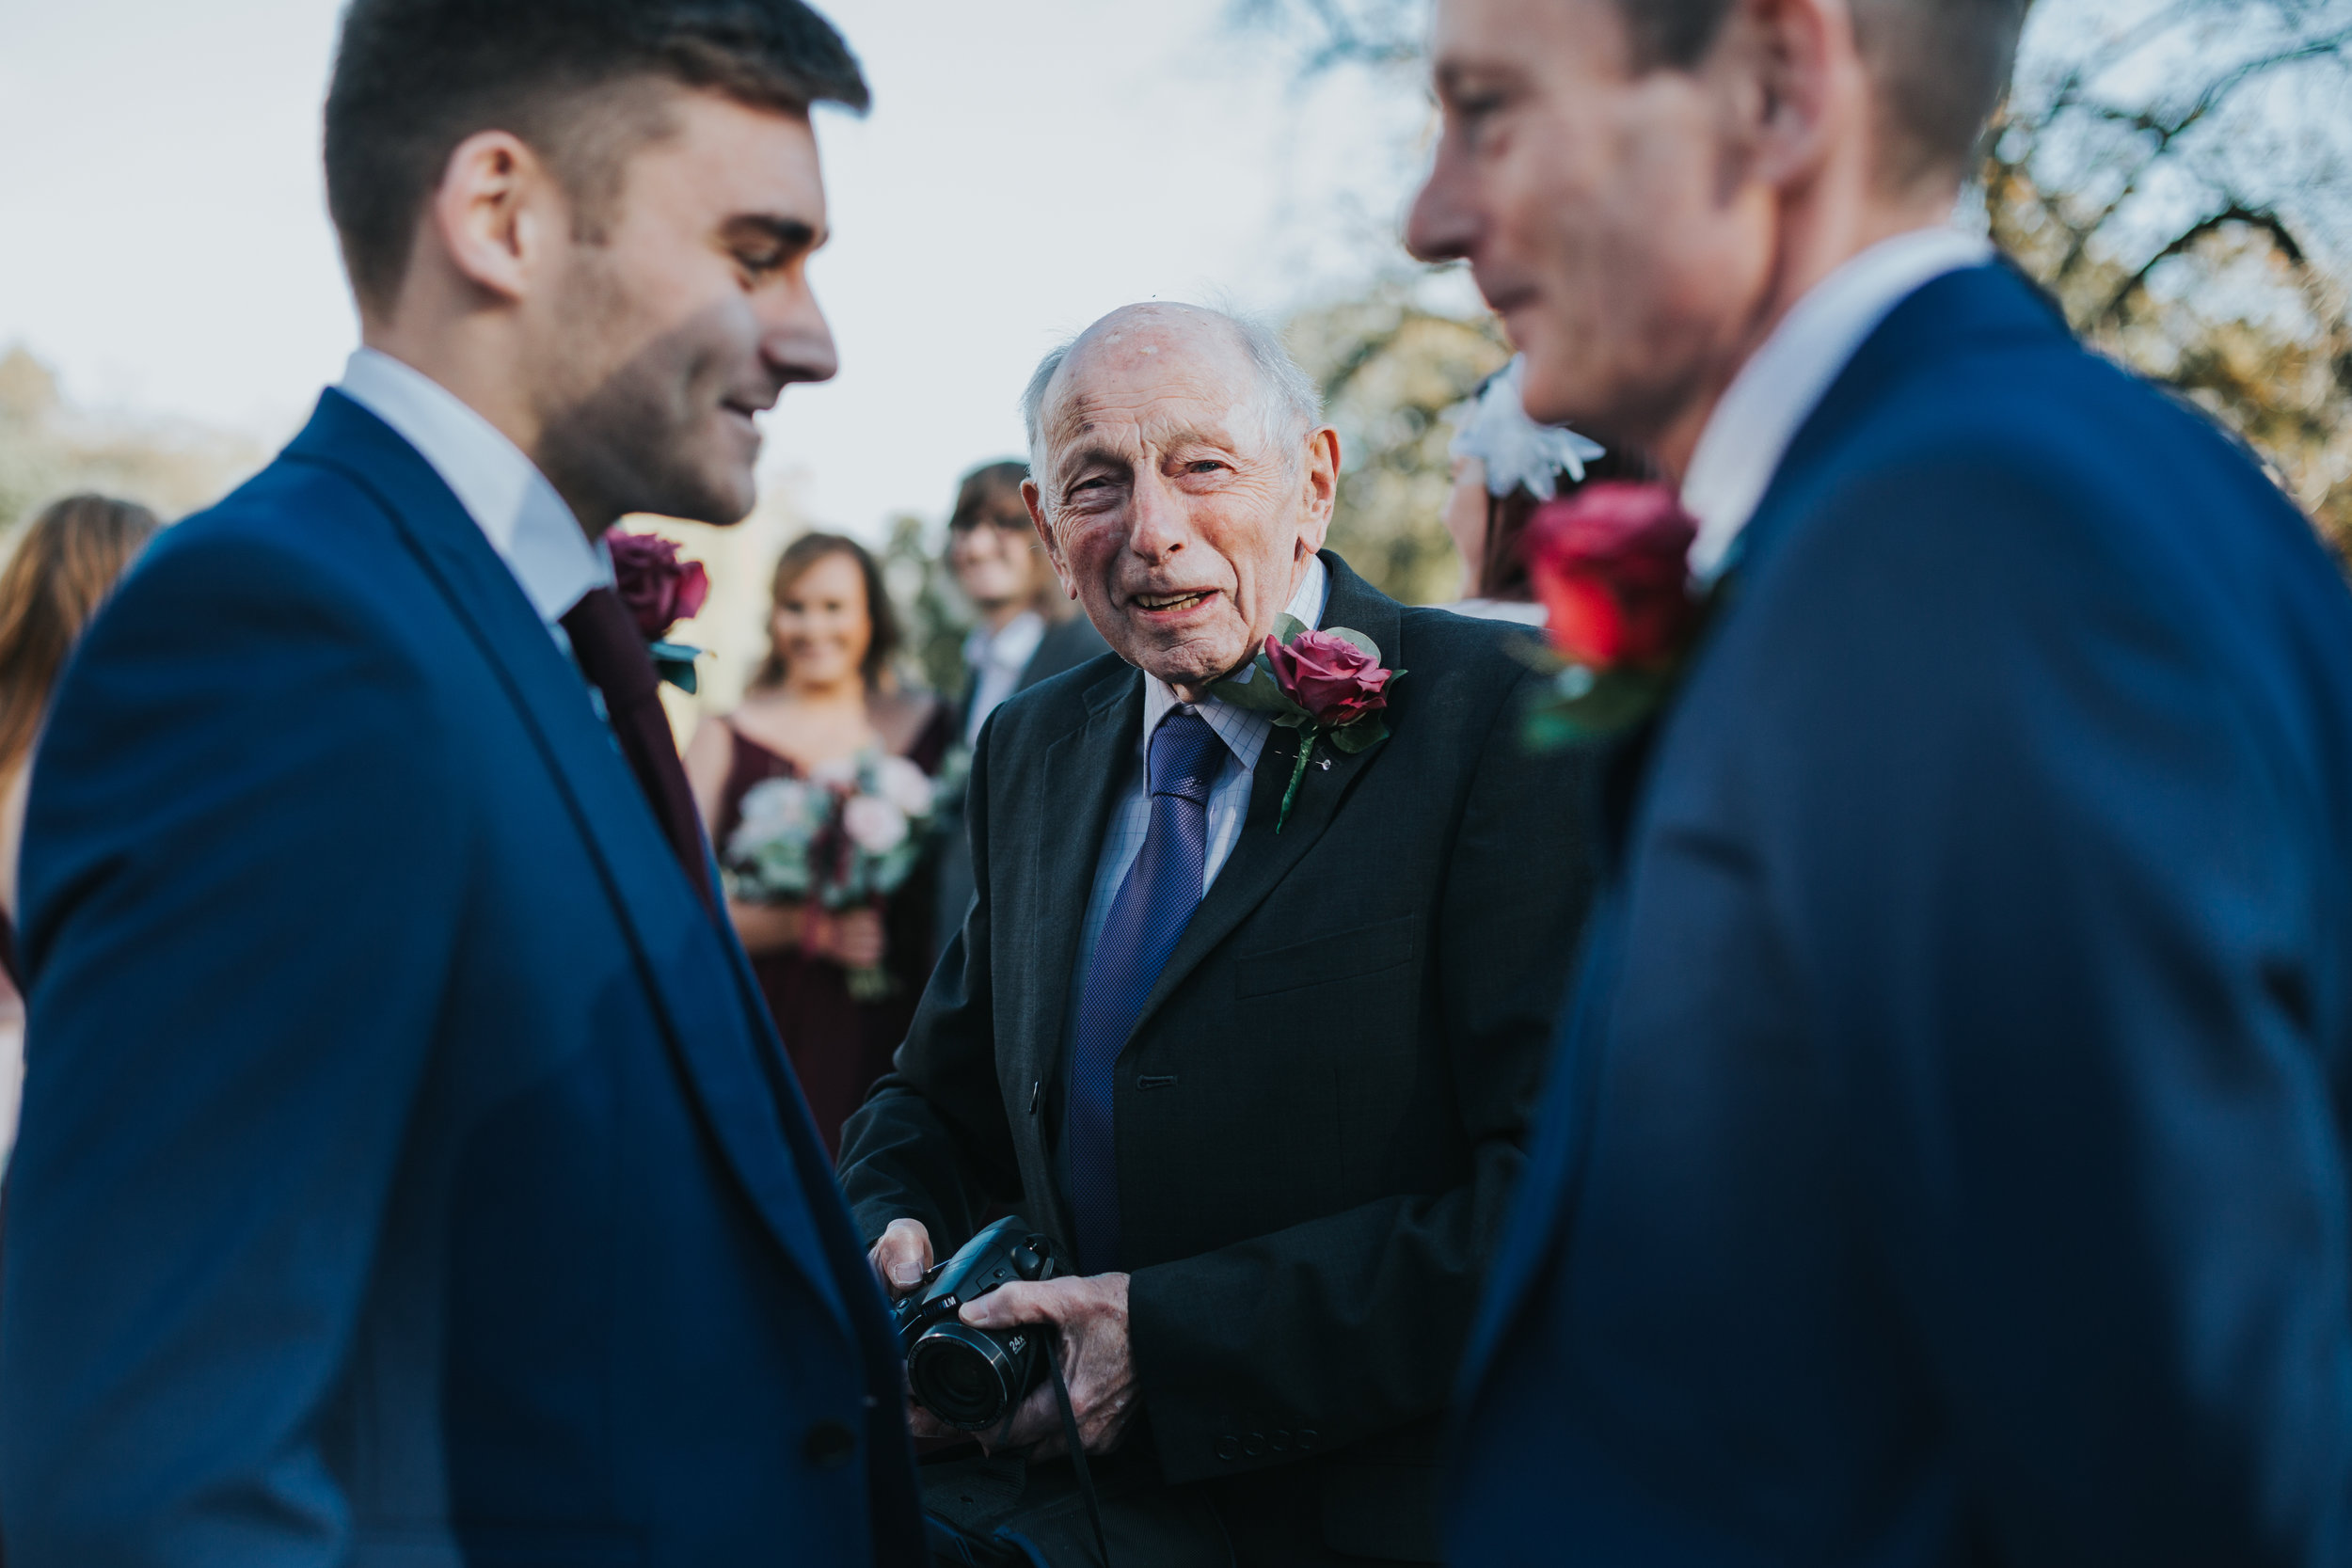 Older male wedding guest holds his camera, framed by two male wedding guests wearing blue.